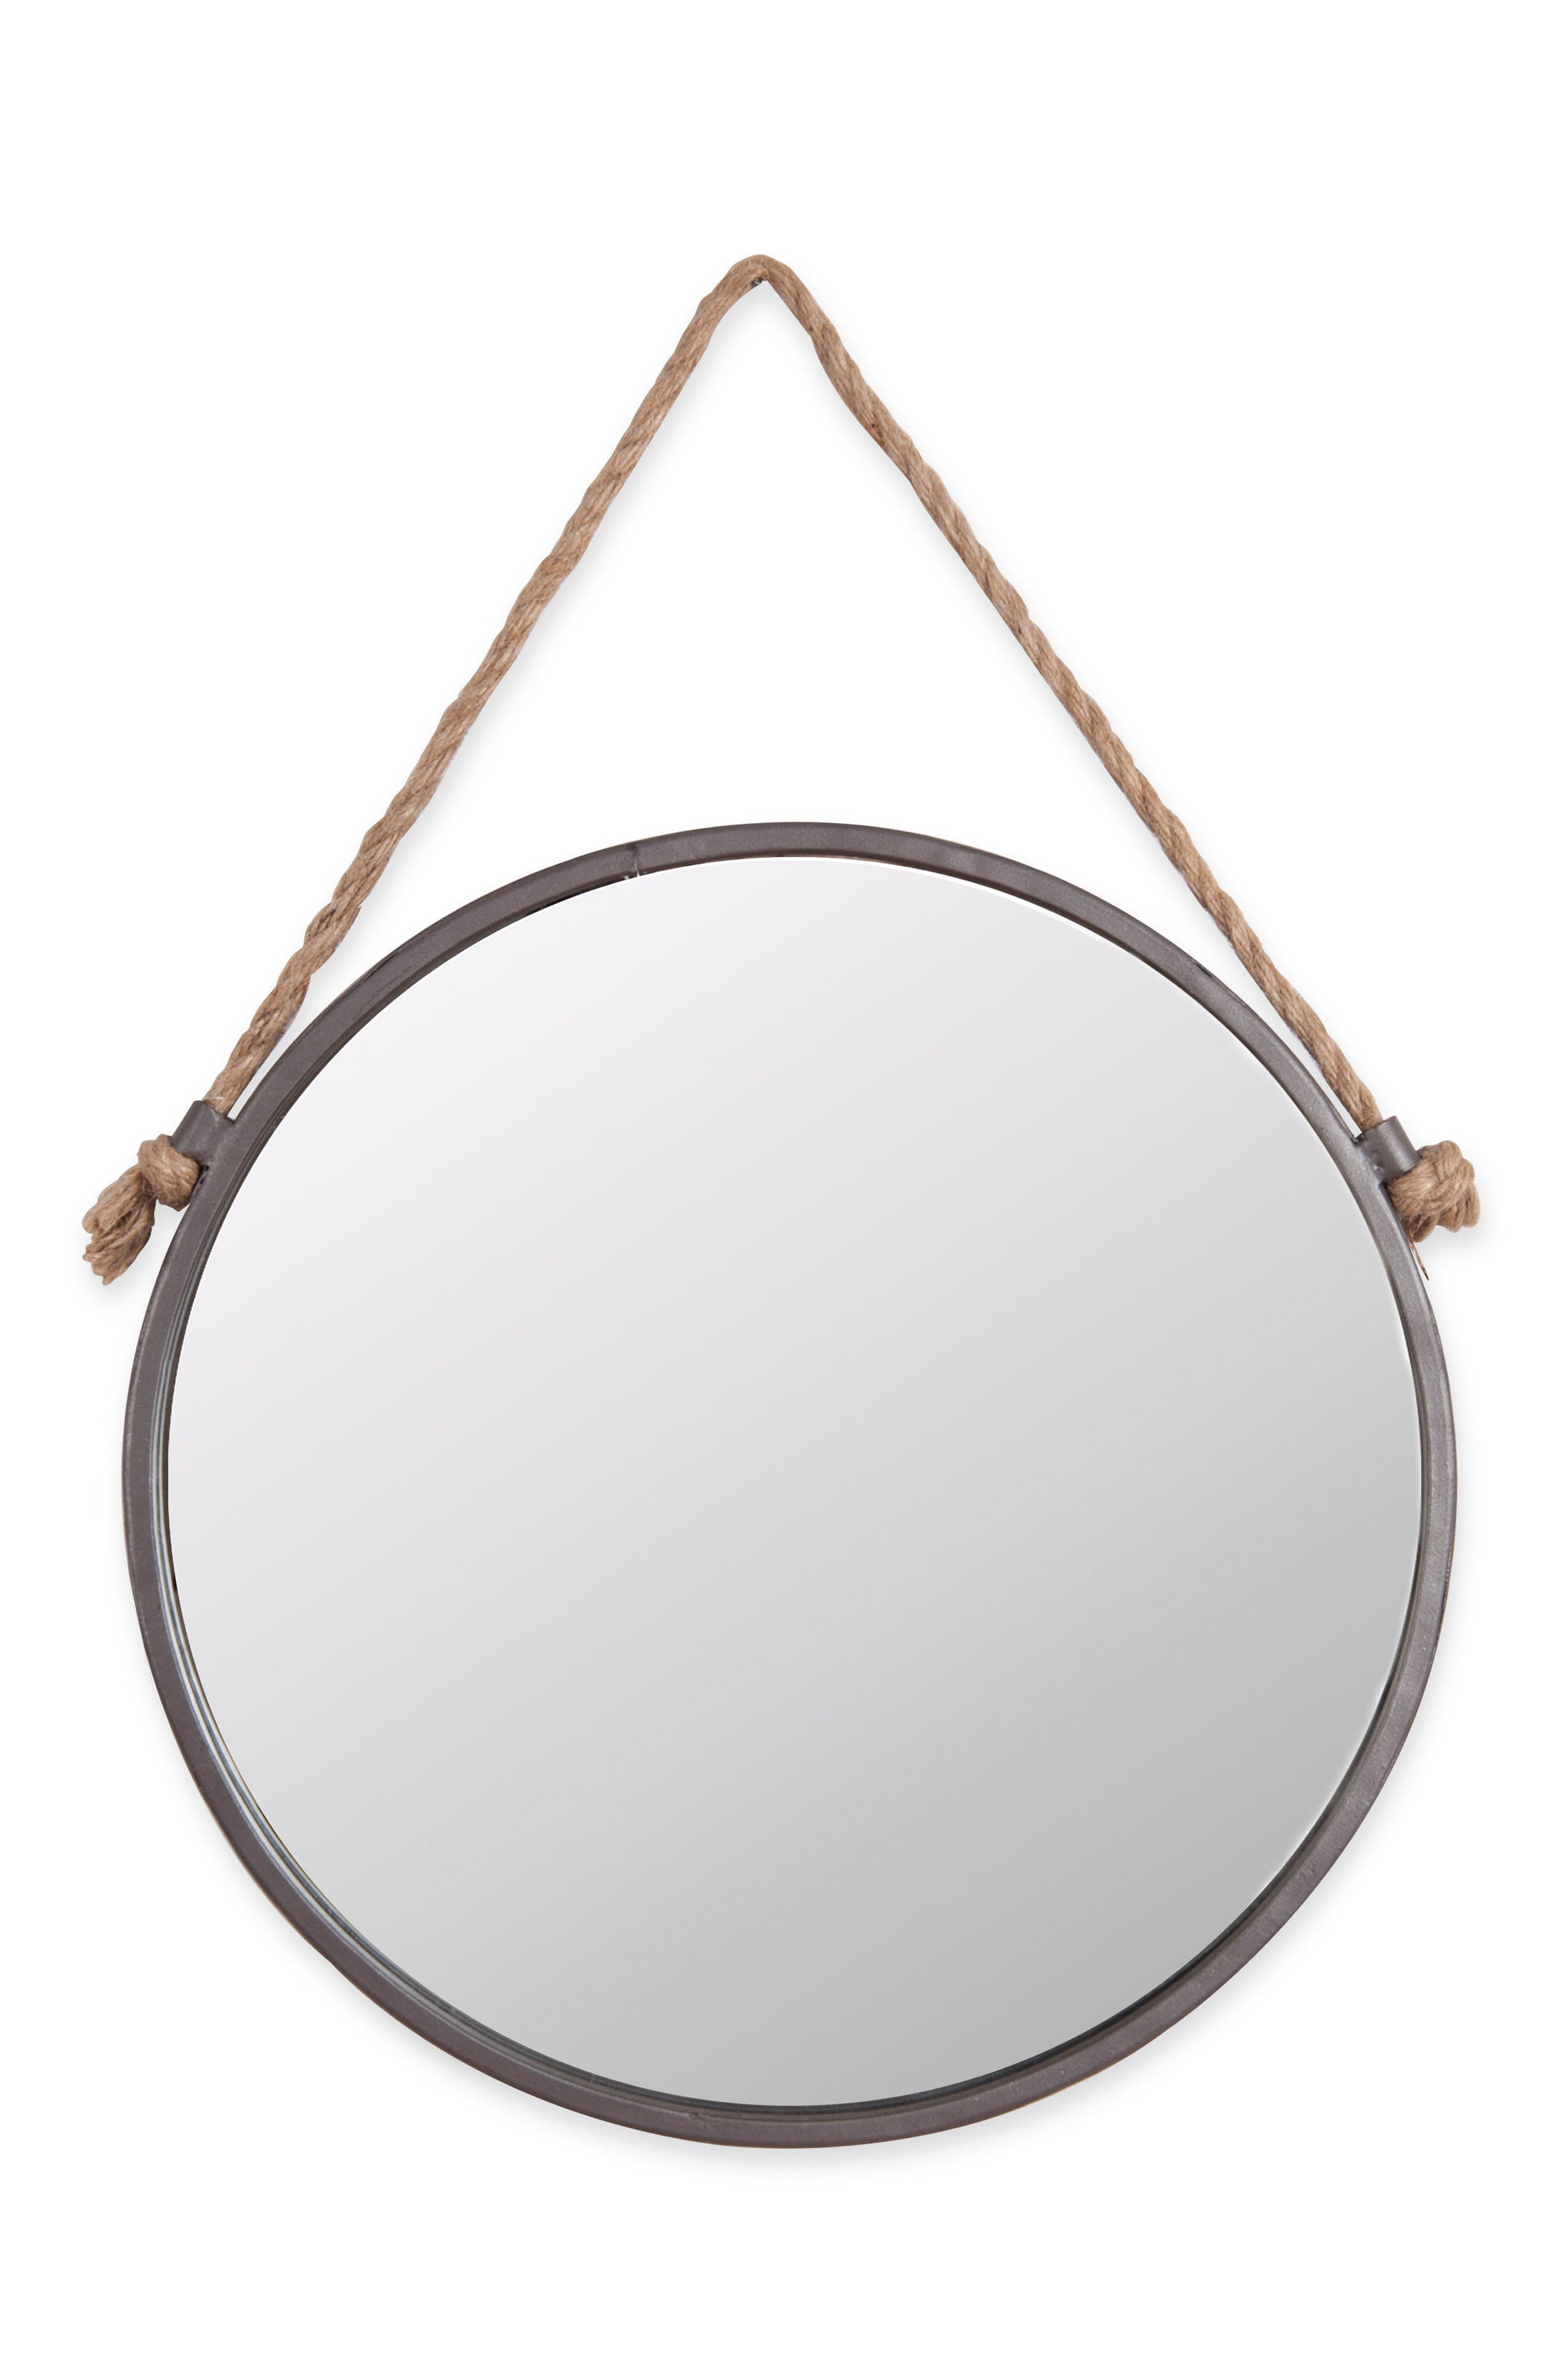 Main Image - Foreside Round Mirror